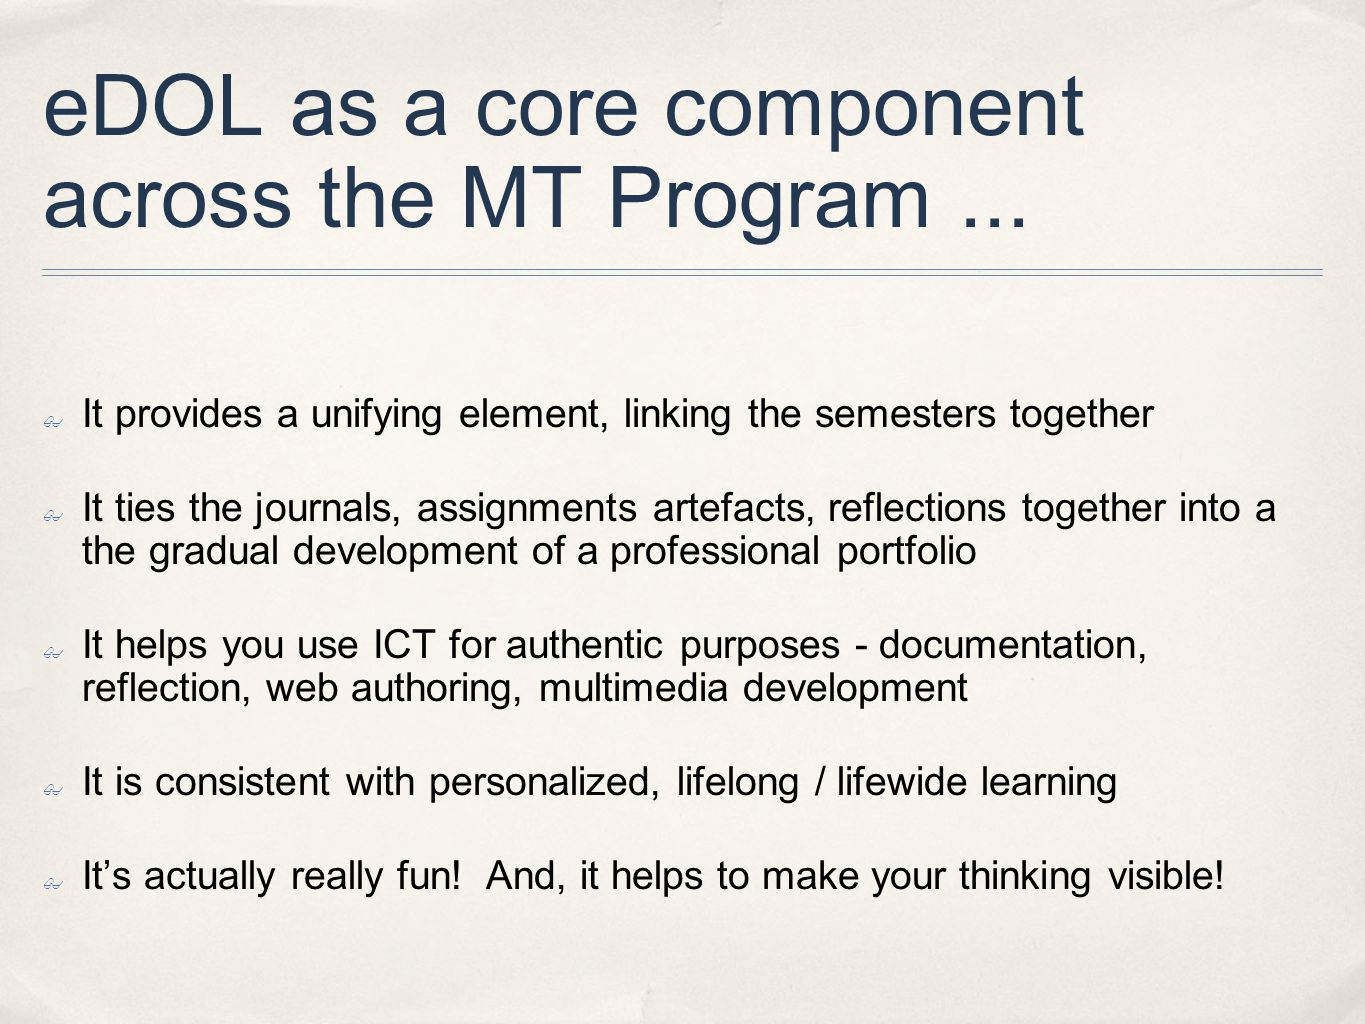 eDOL as a core component across the MT Program...